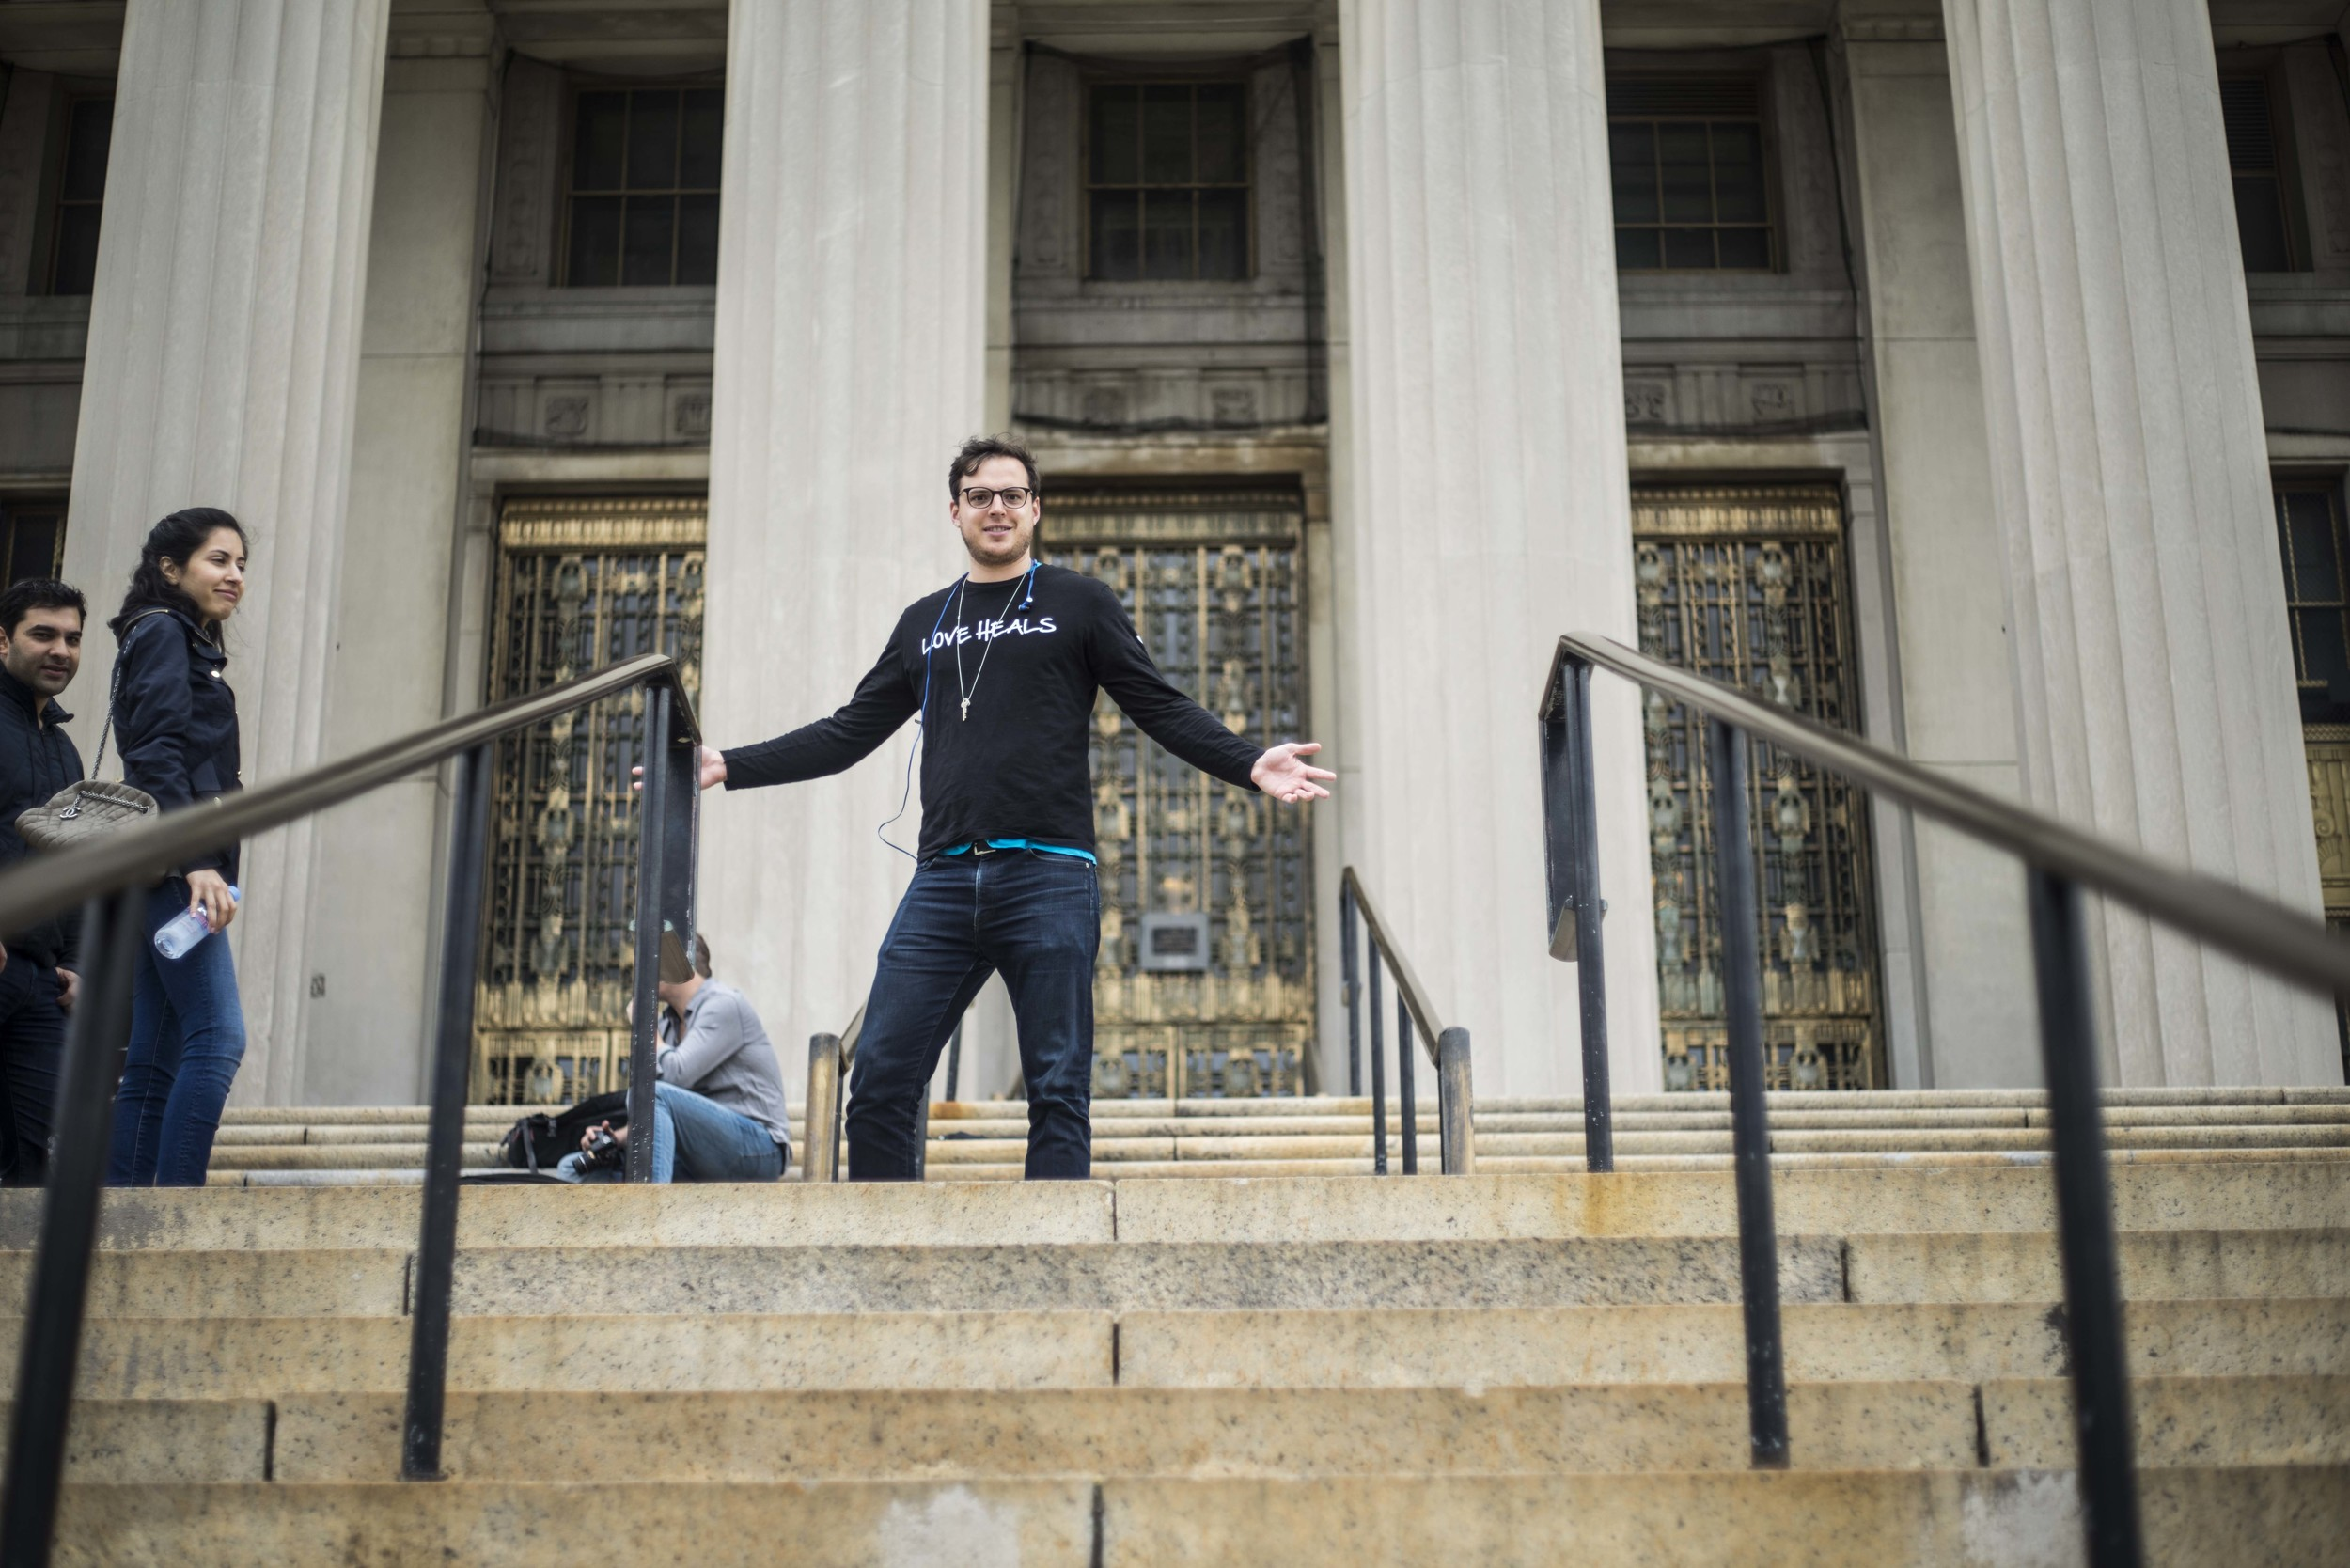 Breakout co-founder Michael Farber led the charge. The group convened at the seat of power in the Bronx, the County Clerk Office at 161st Street and Grand Concourse.